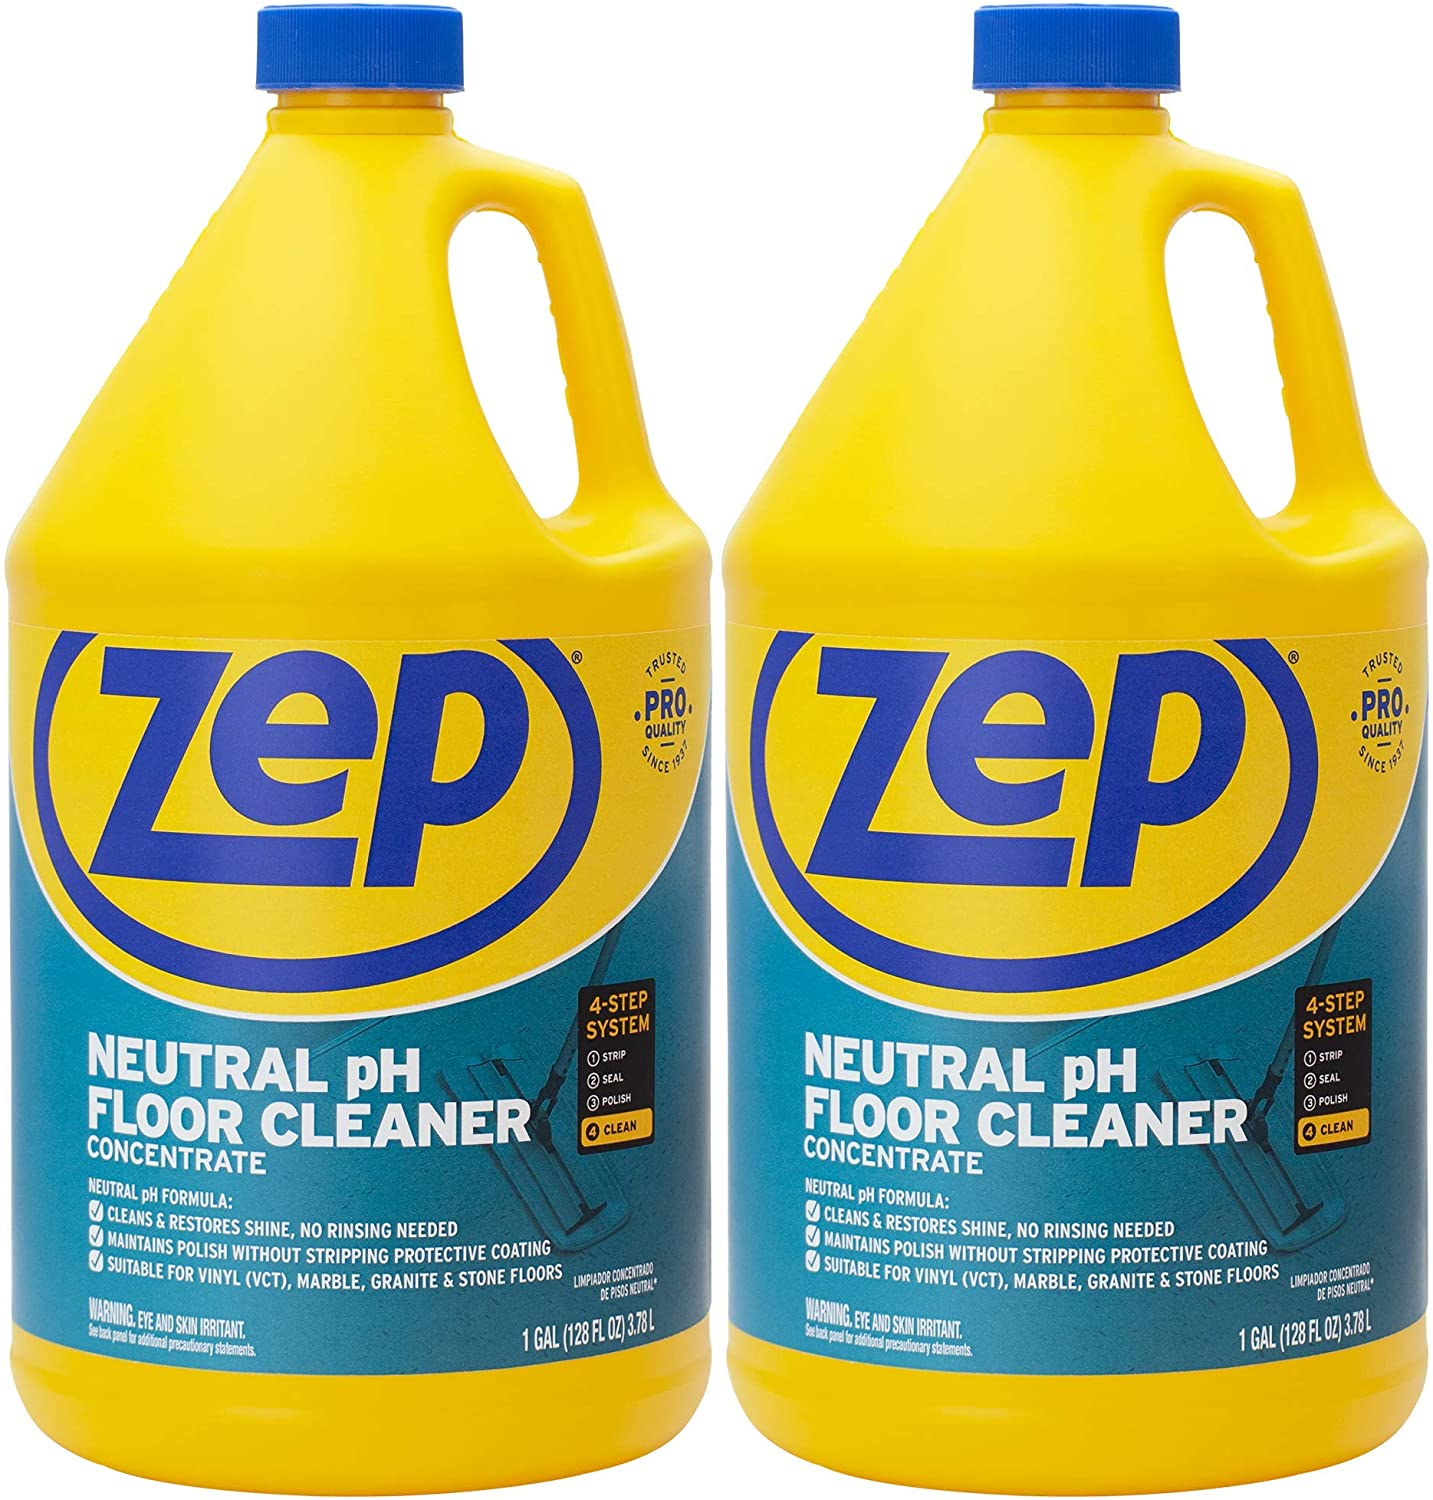 Zep Neutral pH No Residue Floor Cleaner Mopping Solution, 2-Pack